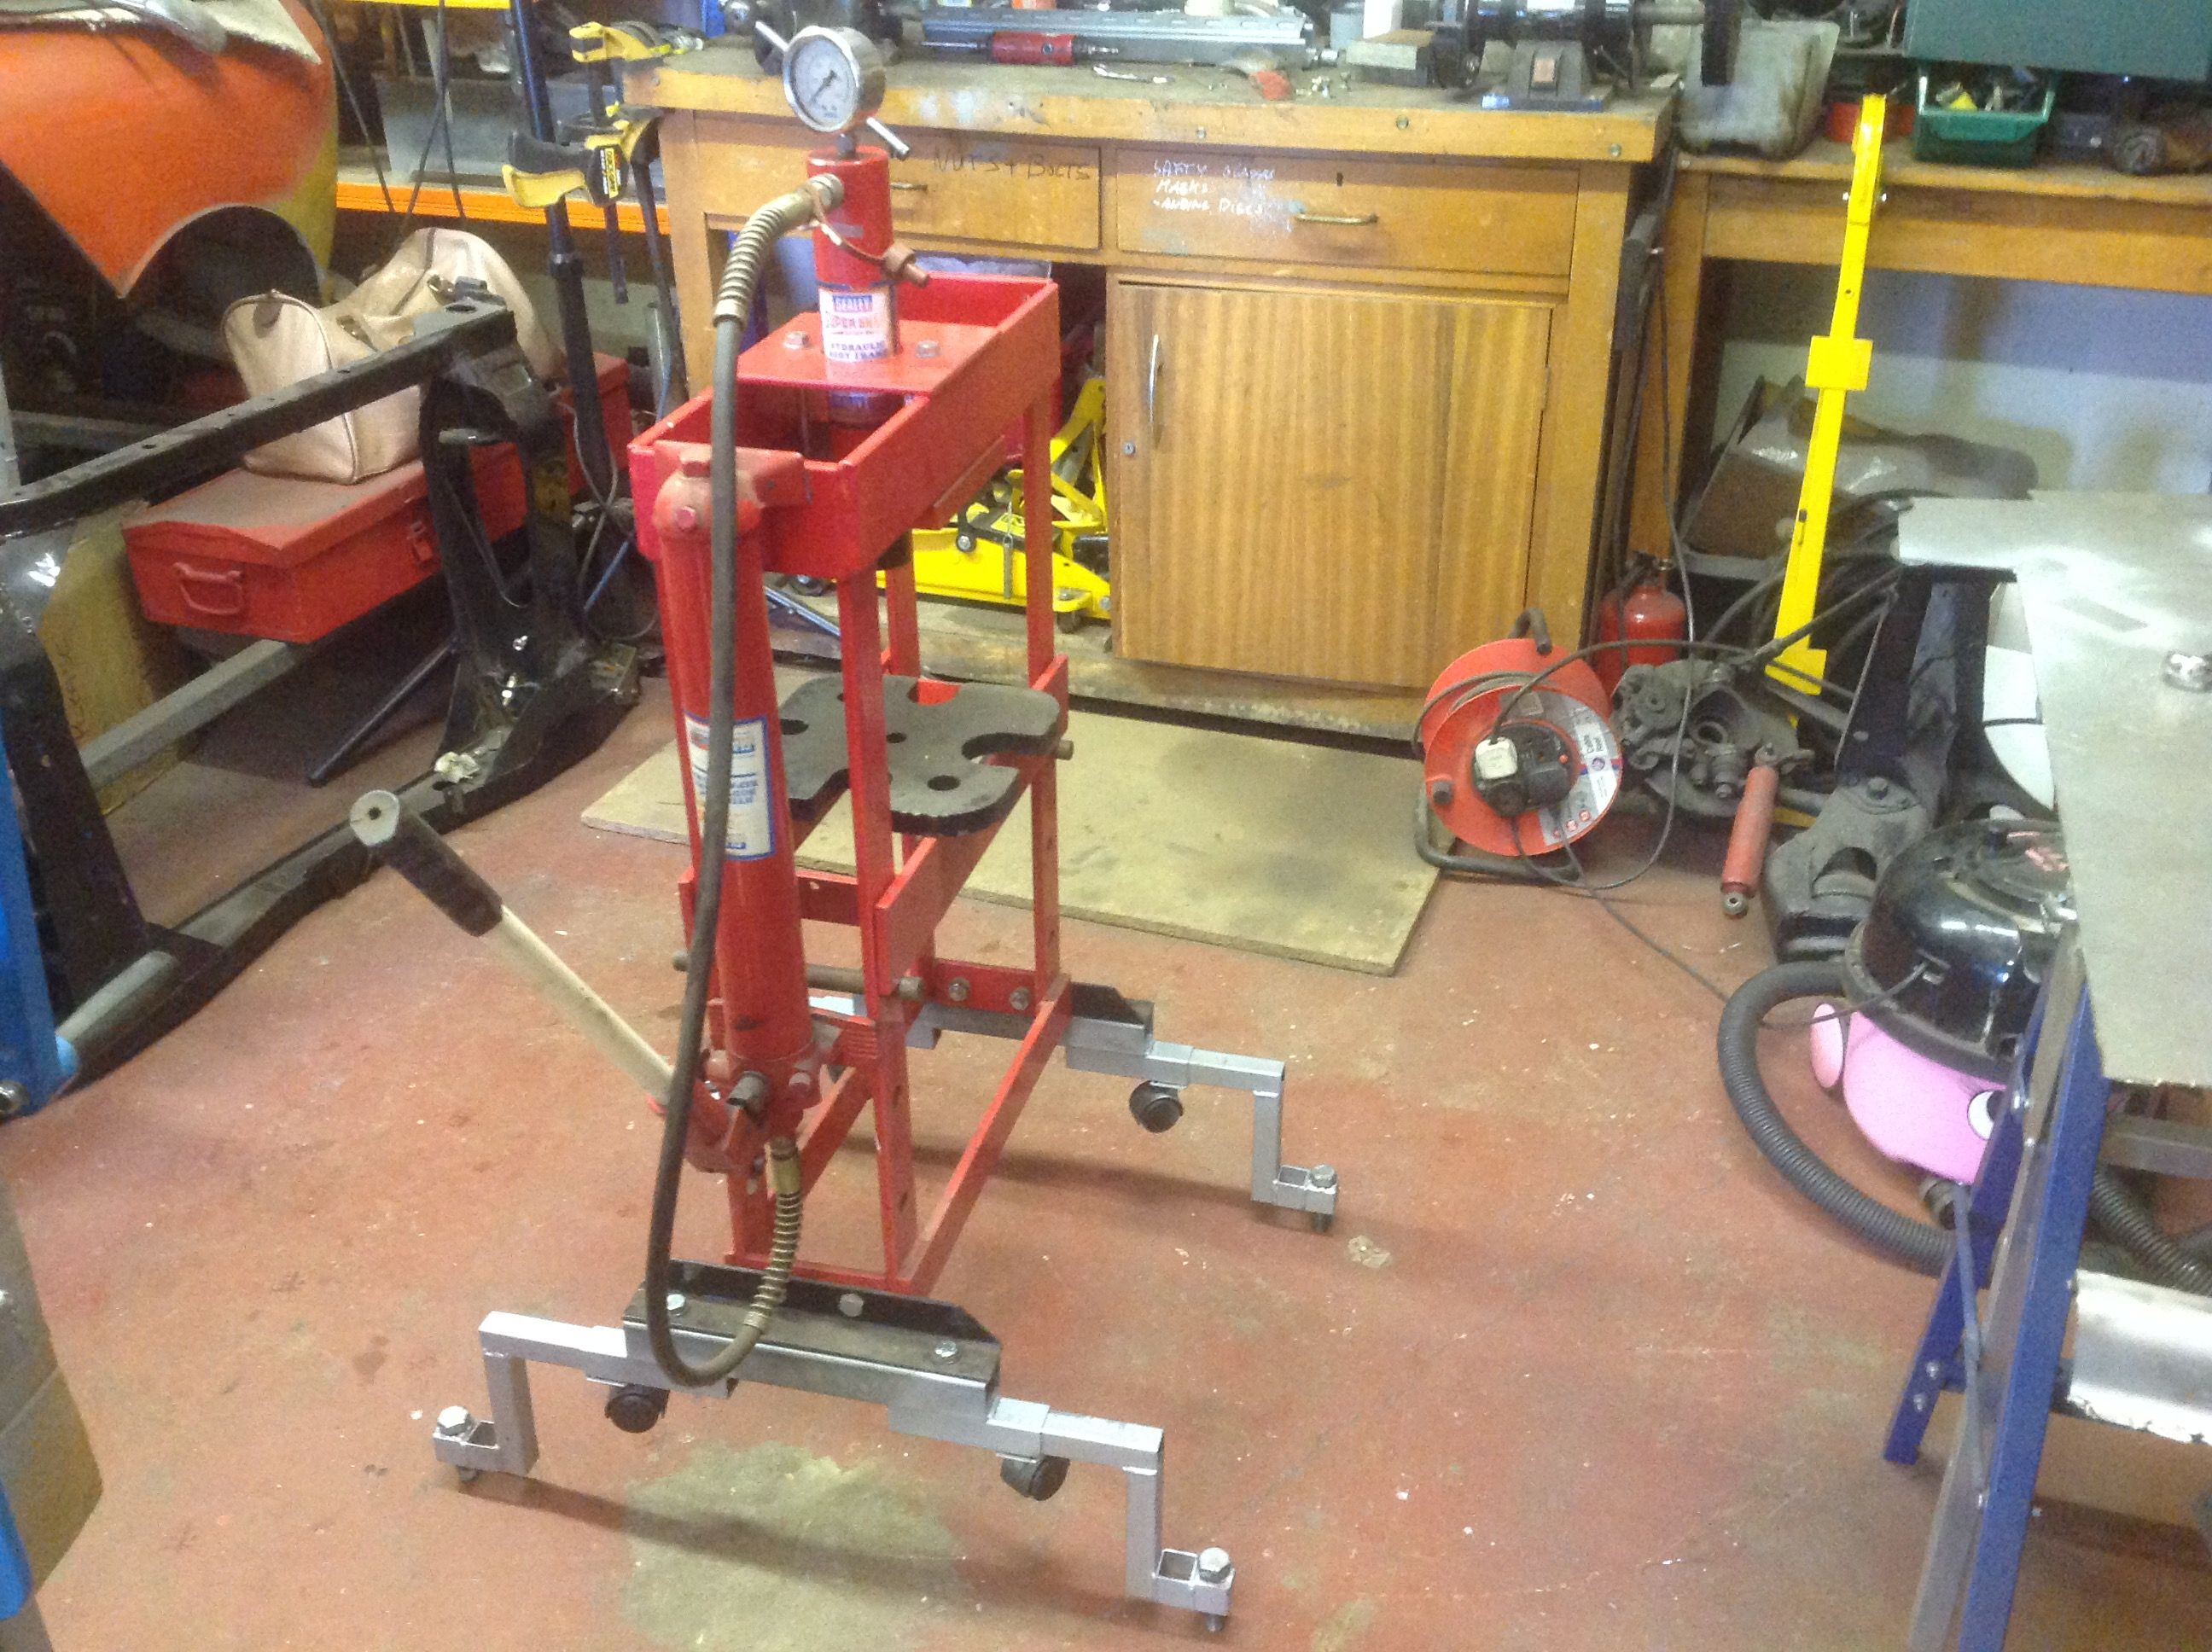 Making 10Ton press more manageable with a set of wheels